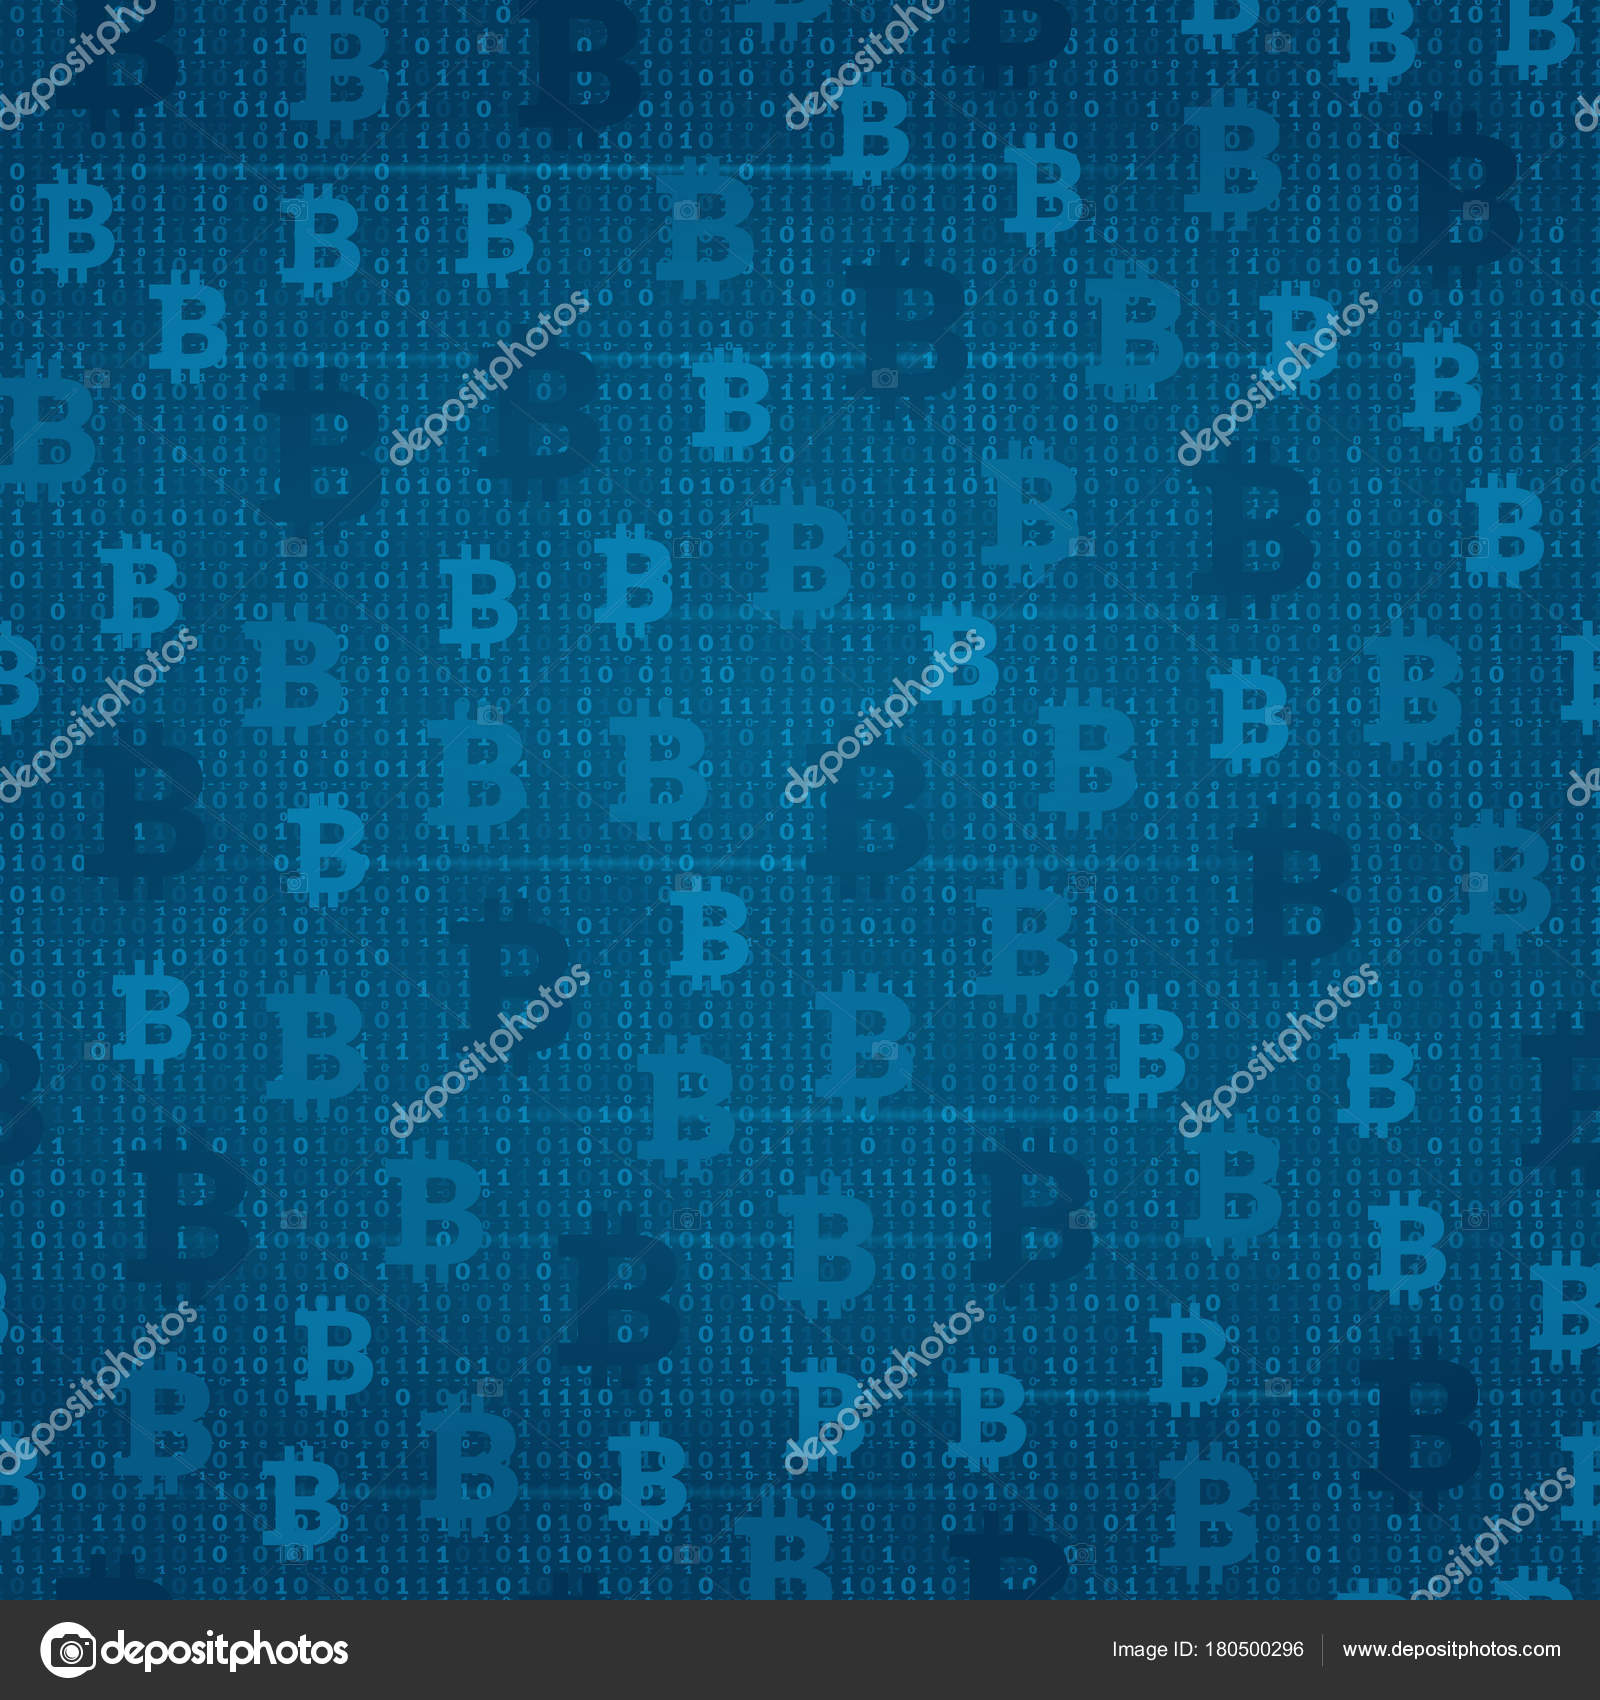 Seamless Pattern Bitcoin On The Background Of Program Code Stock Abstact With Circuit Board And Binary Images Vector